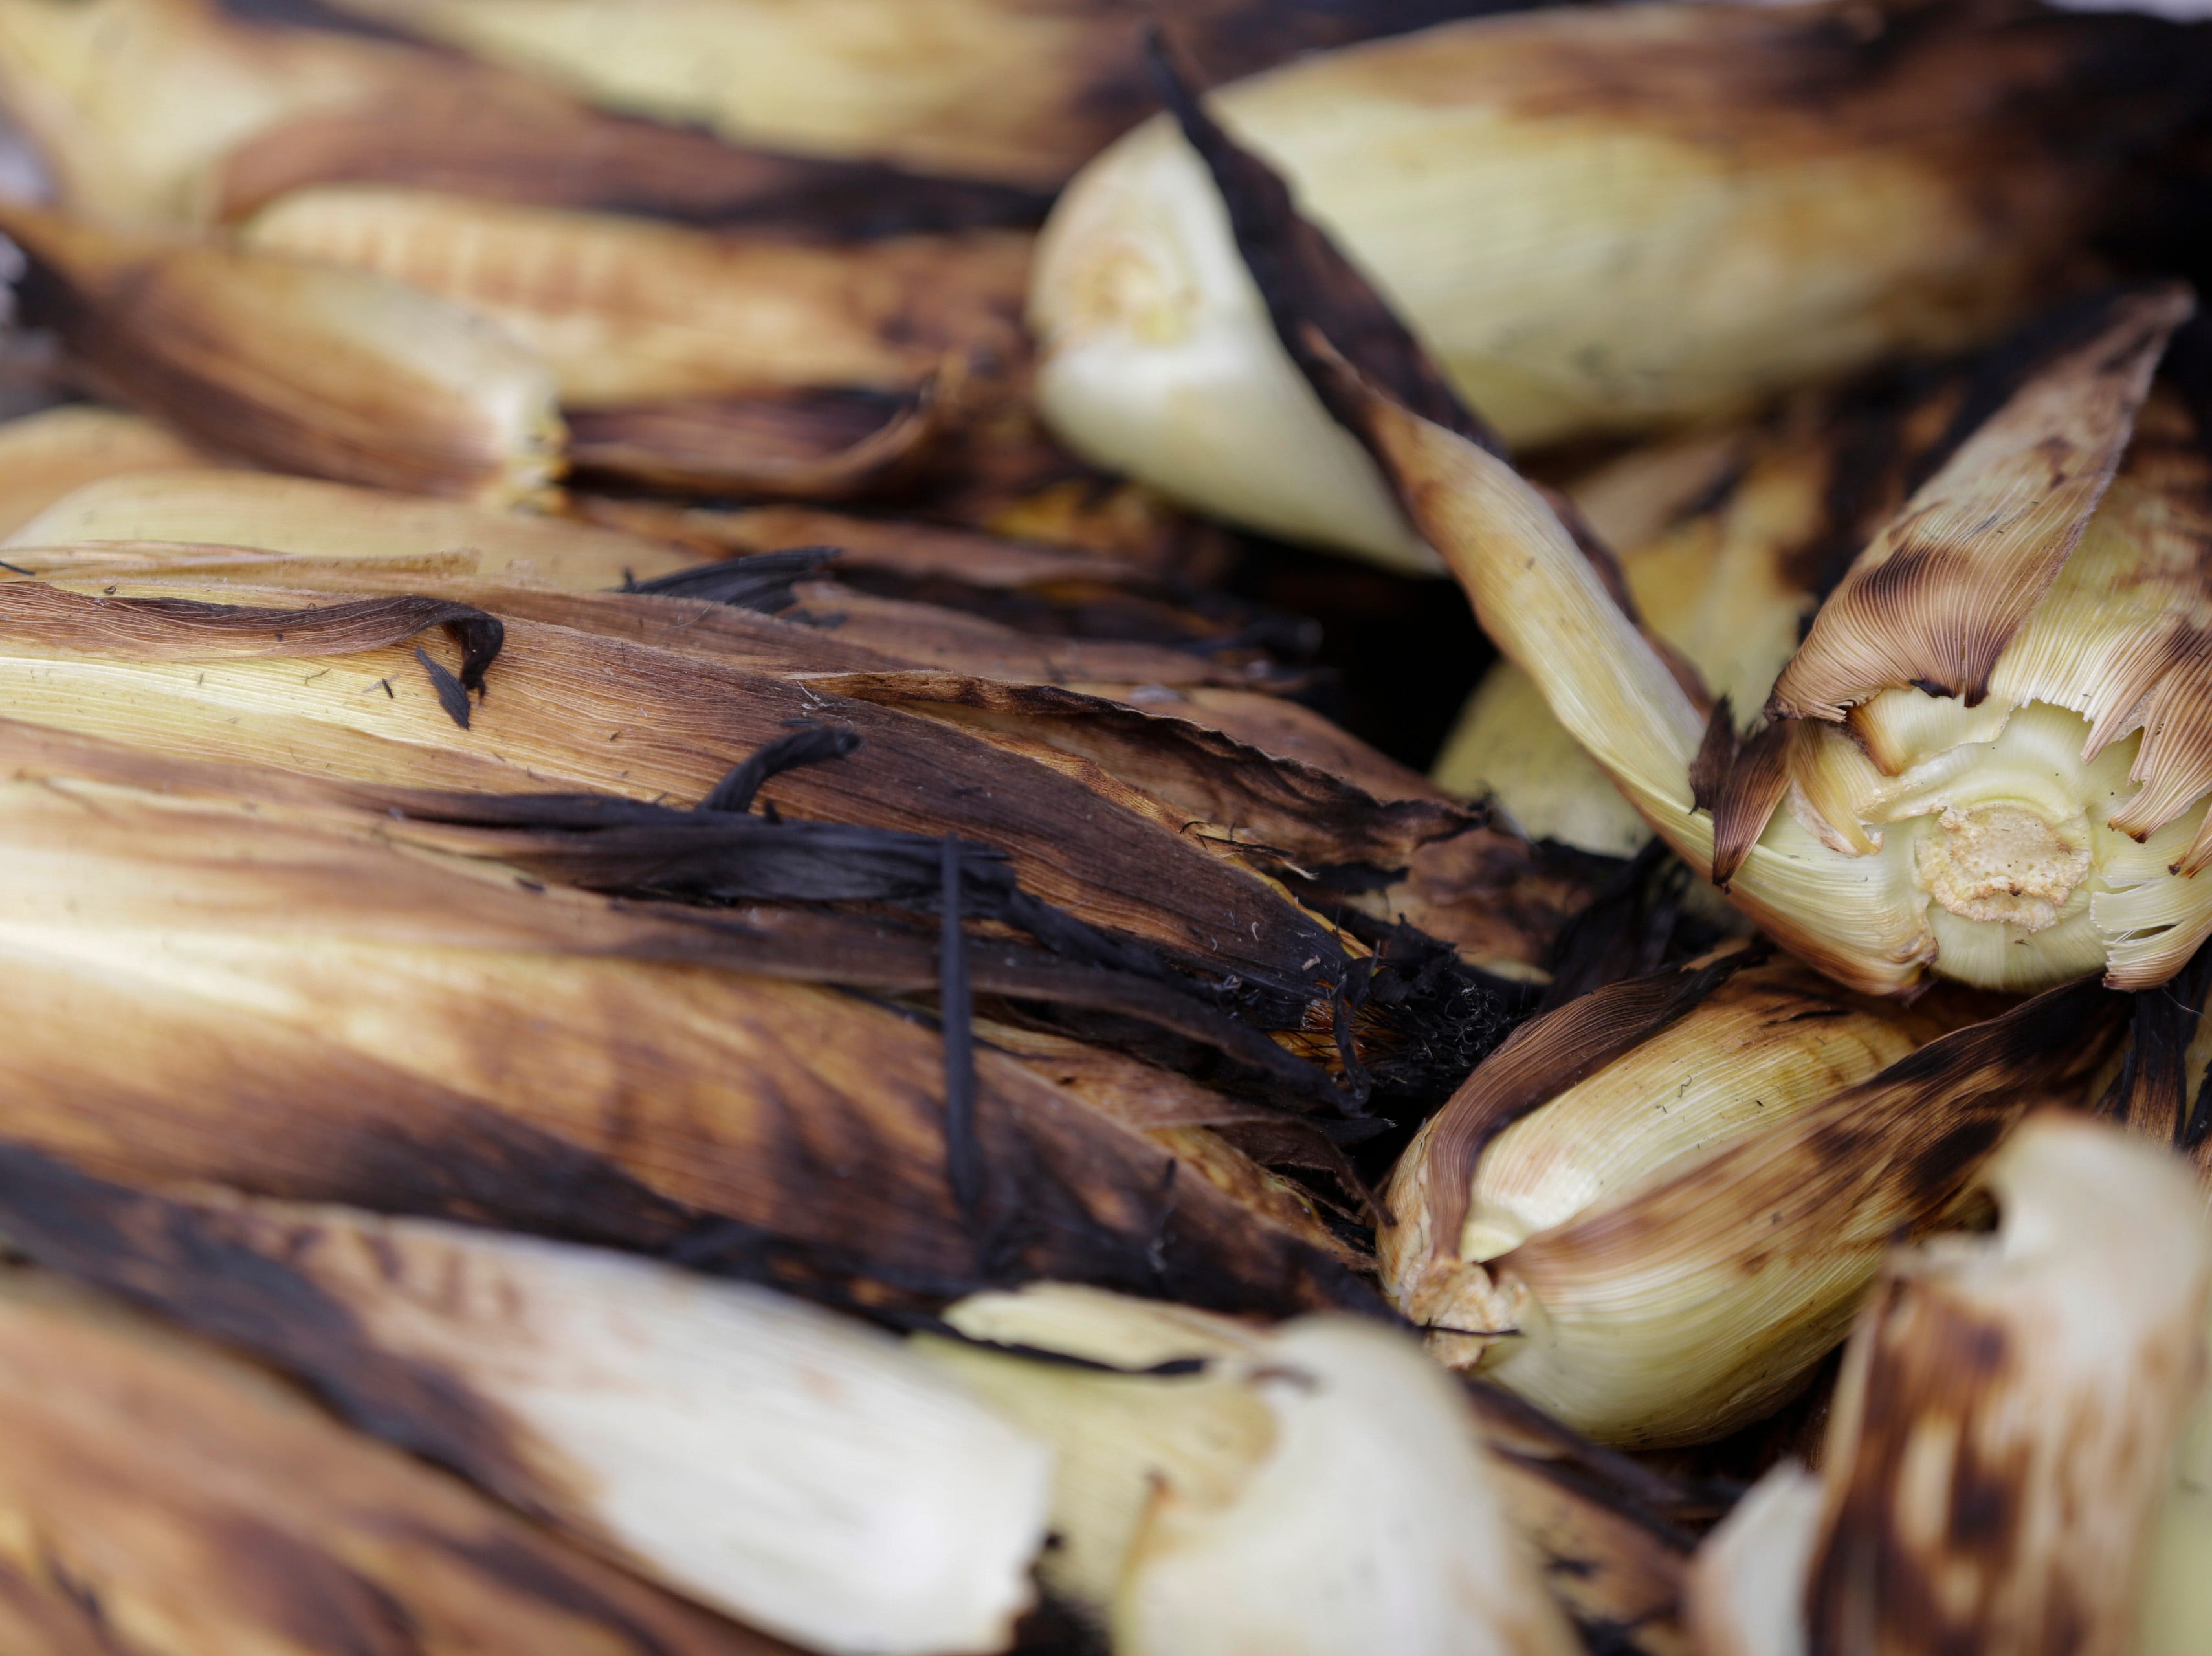 Roasted corn waits to be served at the Wisconsin Rapids community picnic on First Avenue South and Johnson Street Wednesday, August 1, 2018.